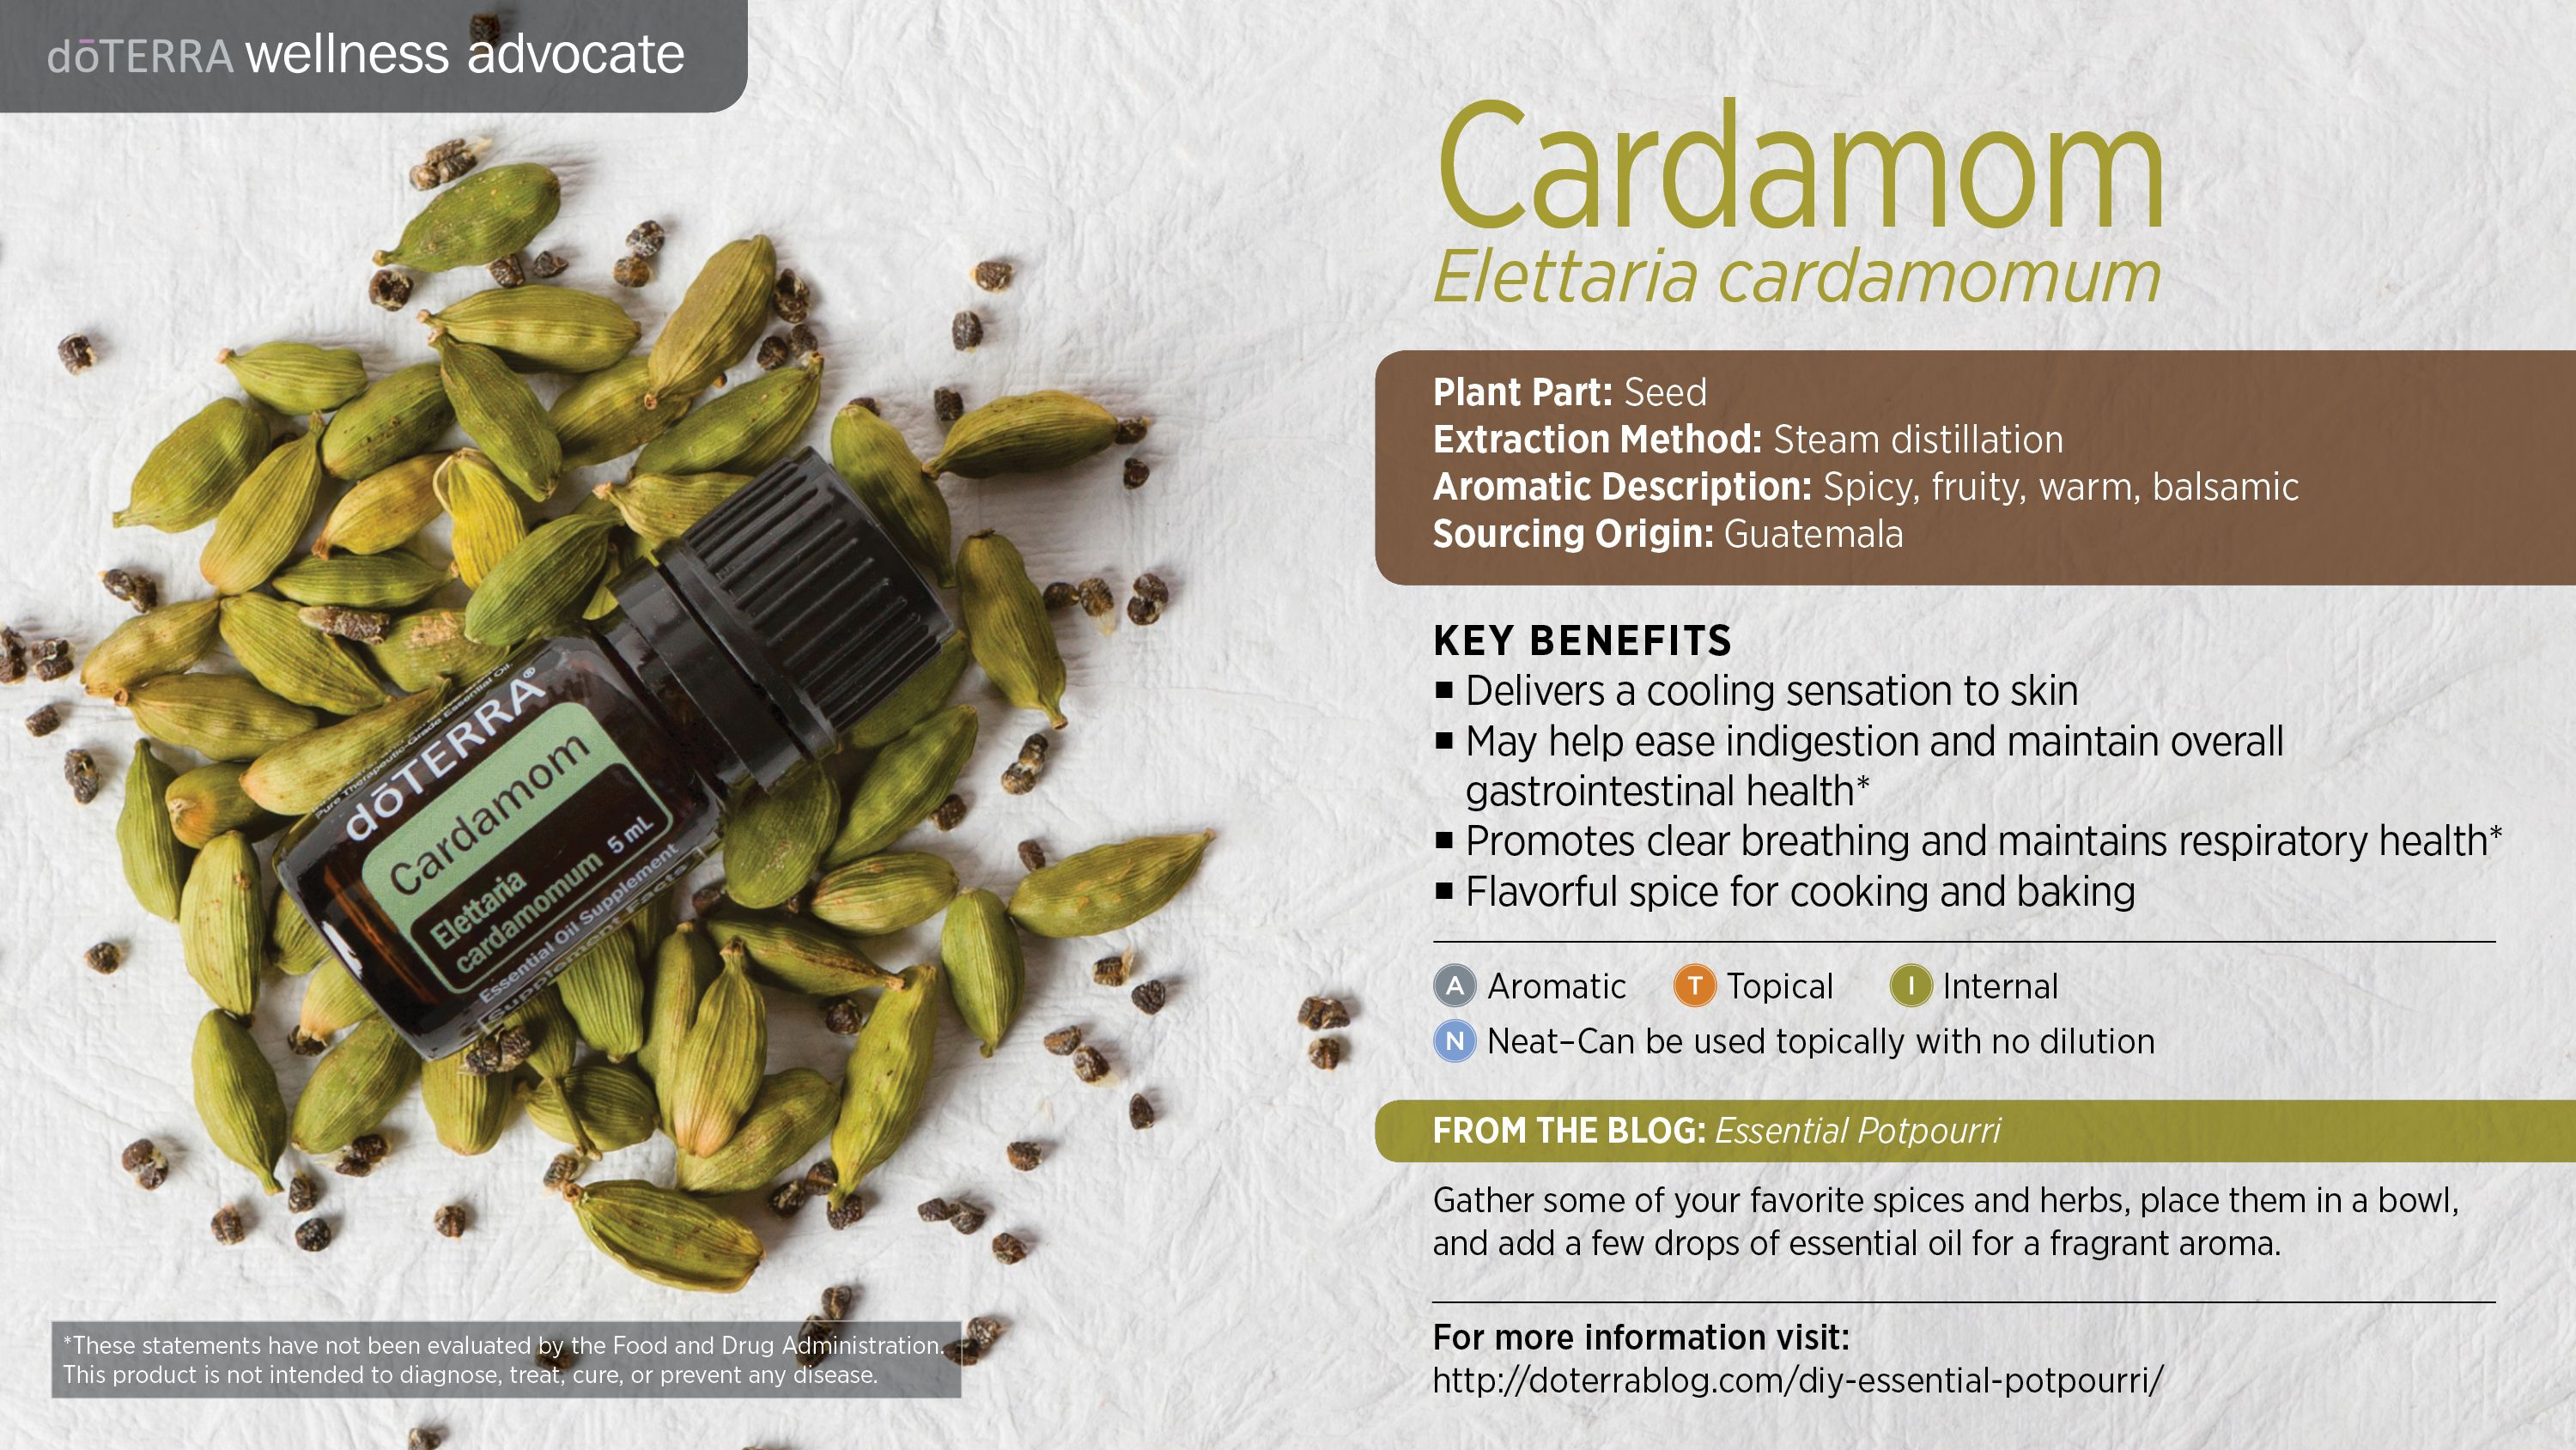 Dōterra S Cardamom Essential Oil Comes From Seeds Grown In